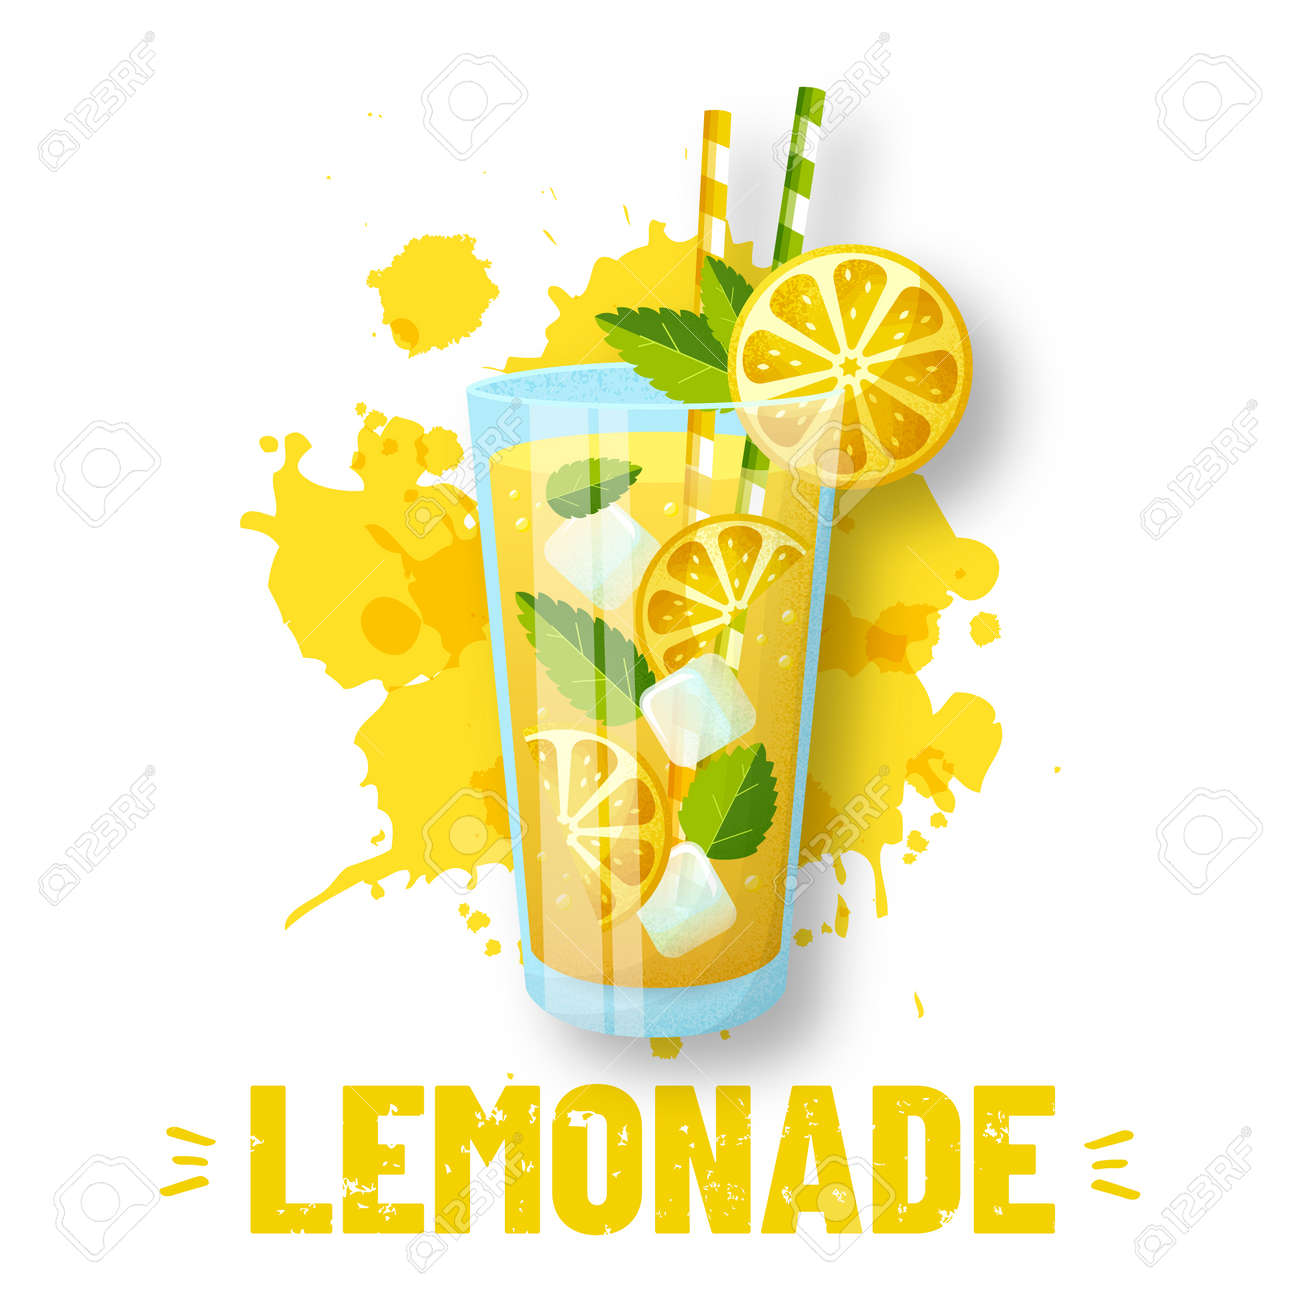 Lemonade - vector illustration. Modern banner with glass and juice splashes isolated on white background. Fresh and sweet summer drink with lemon slices, ice and mint. - 169243827